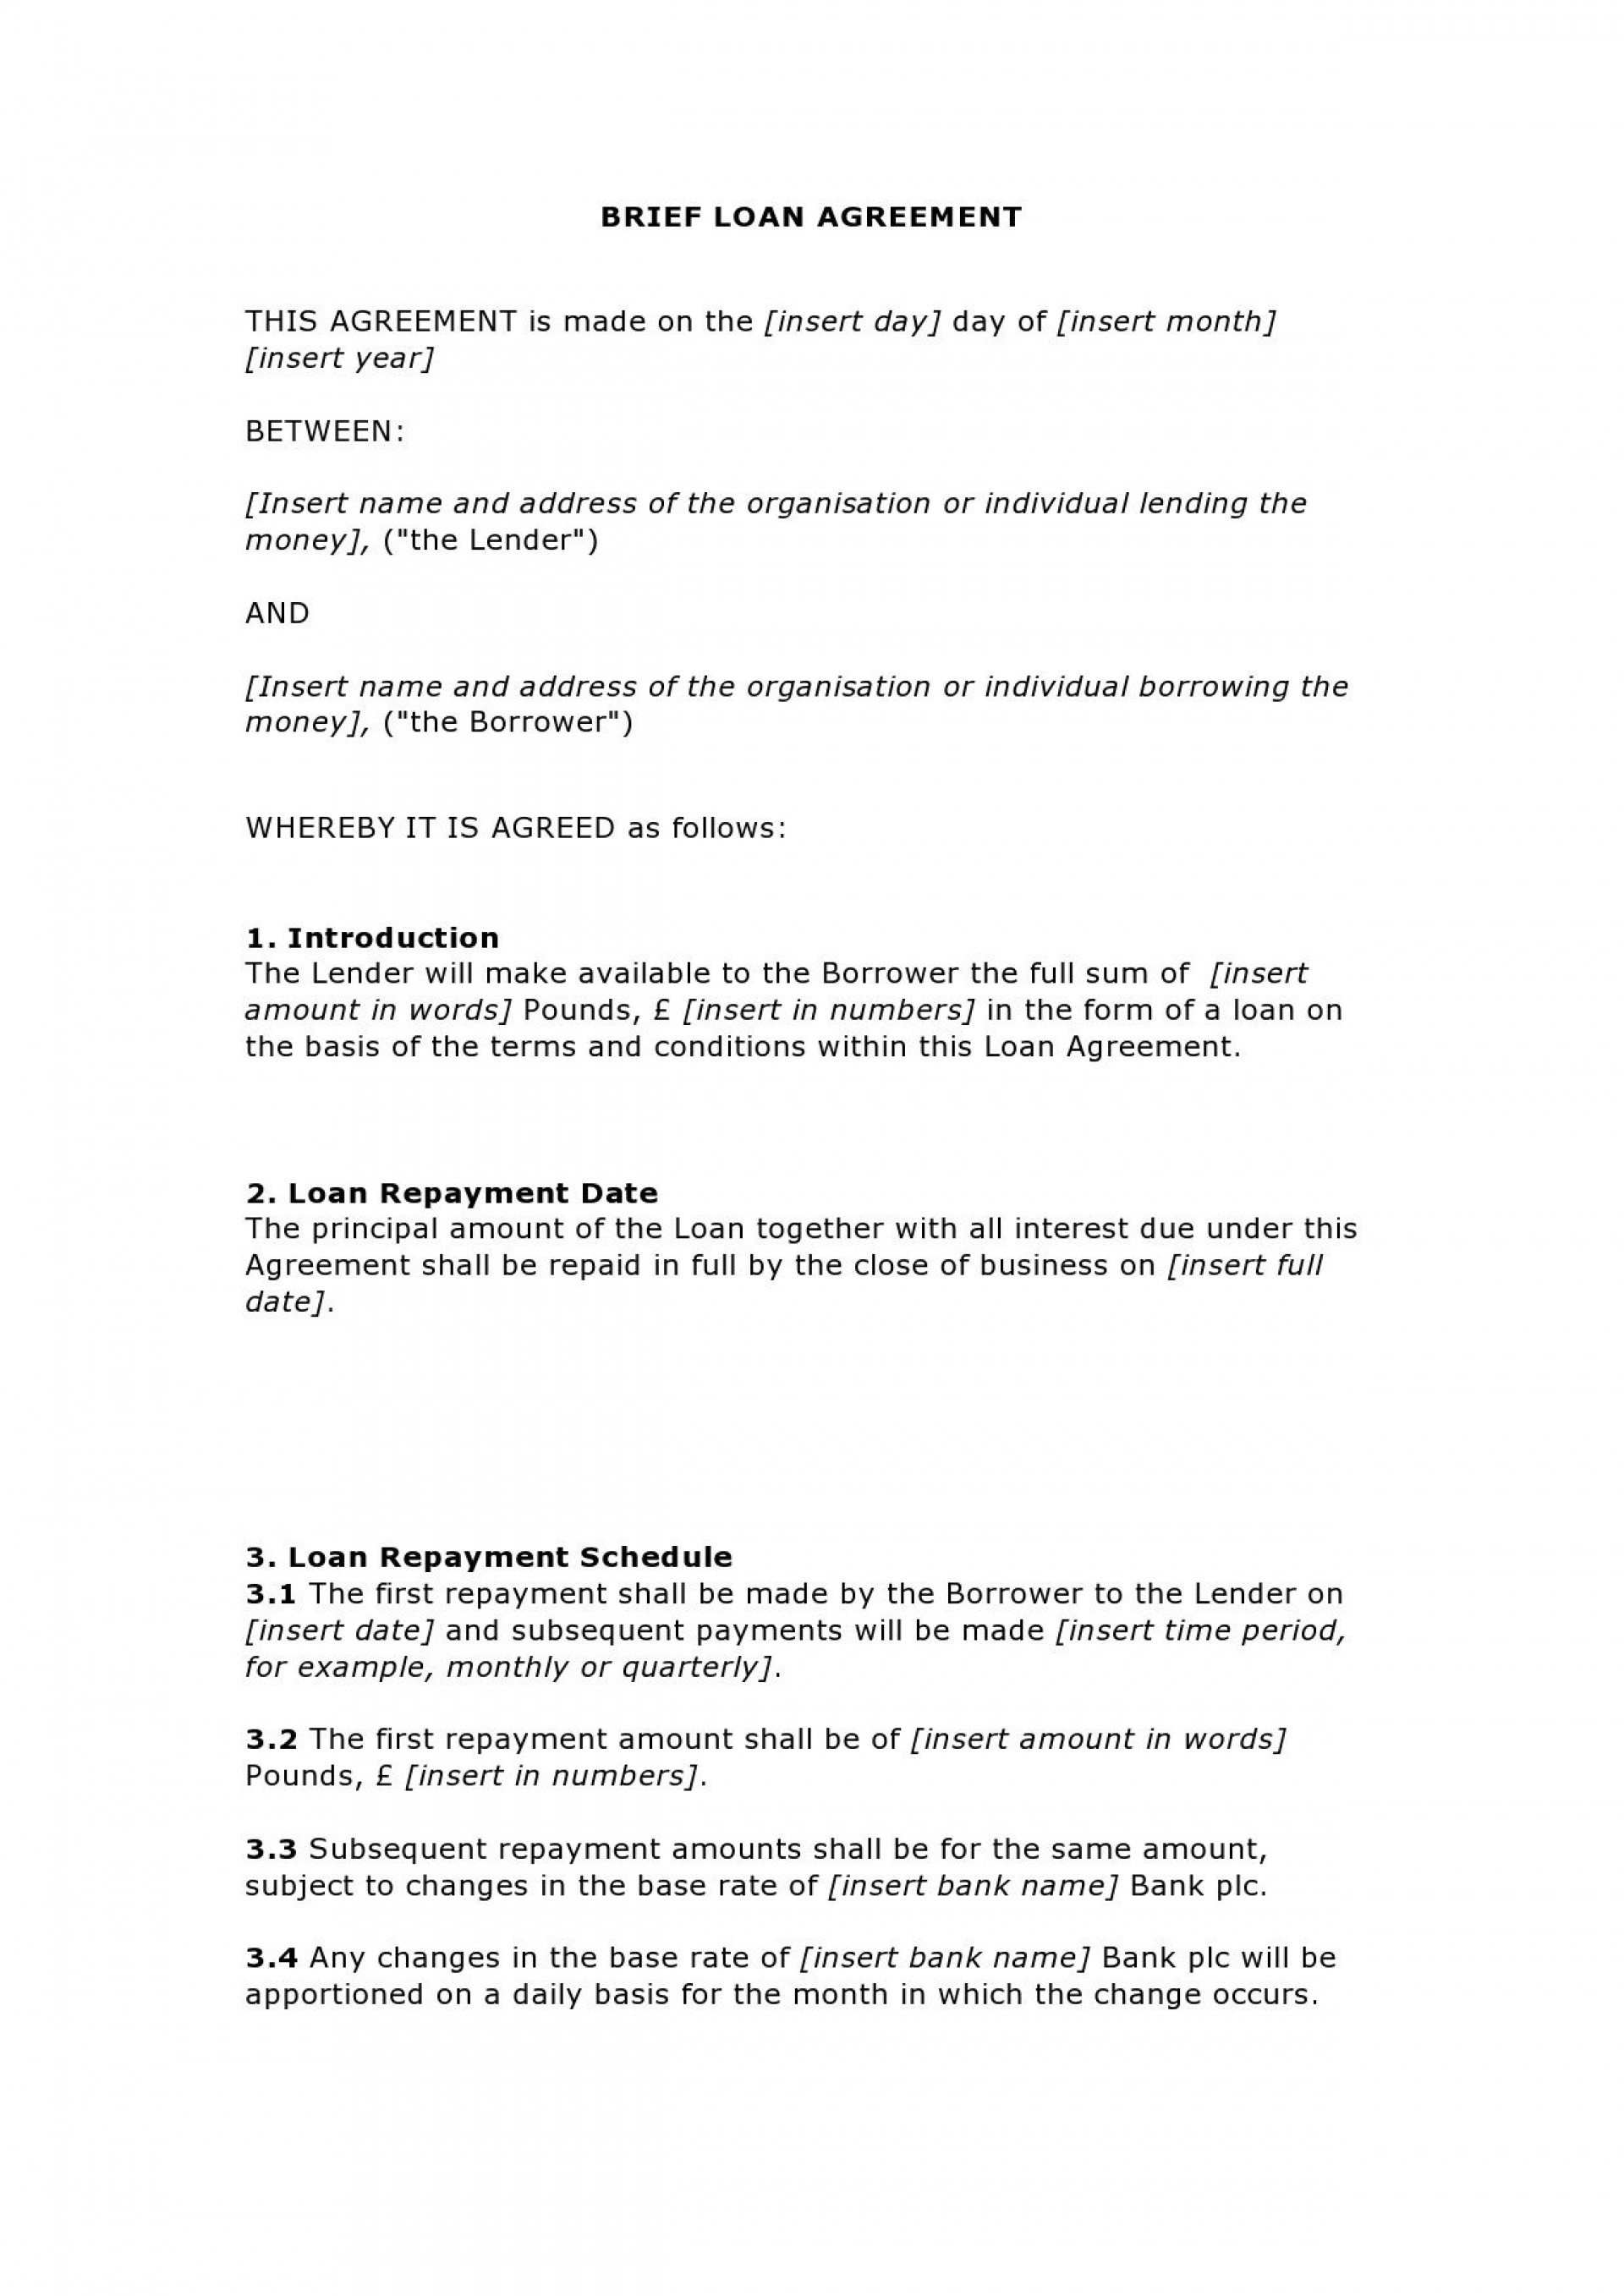 002 Unbelievable Simple Family Loan Agreement Template Australia High Def 1920